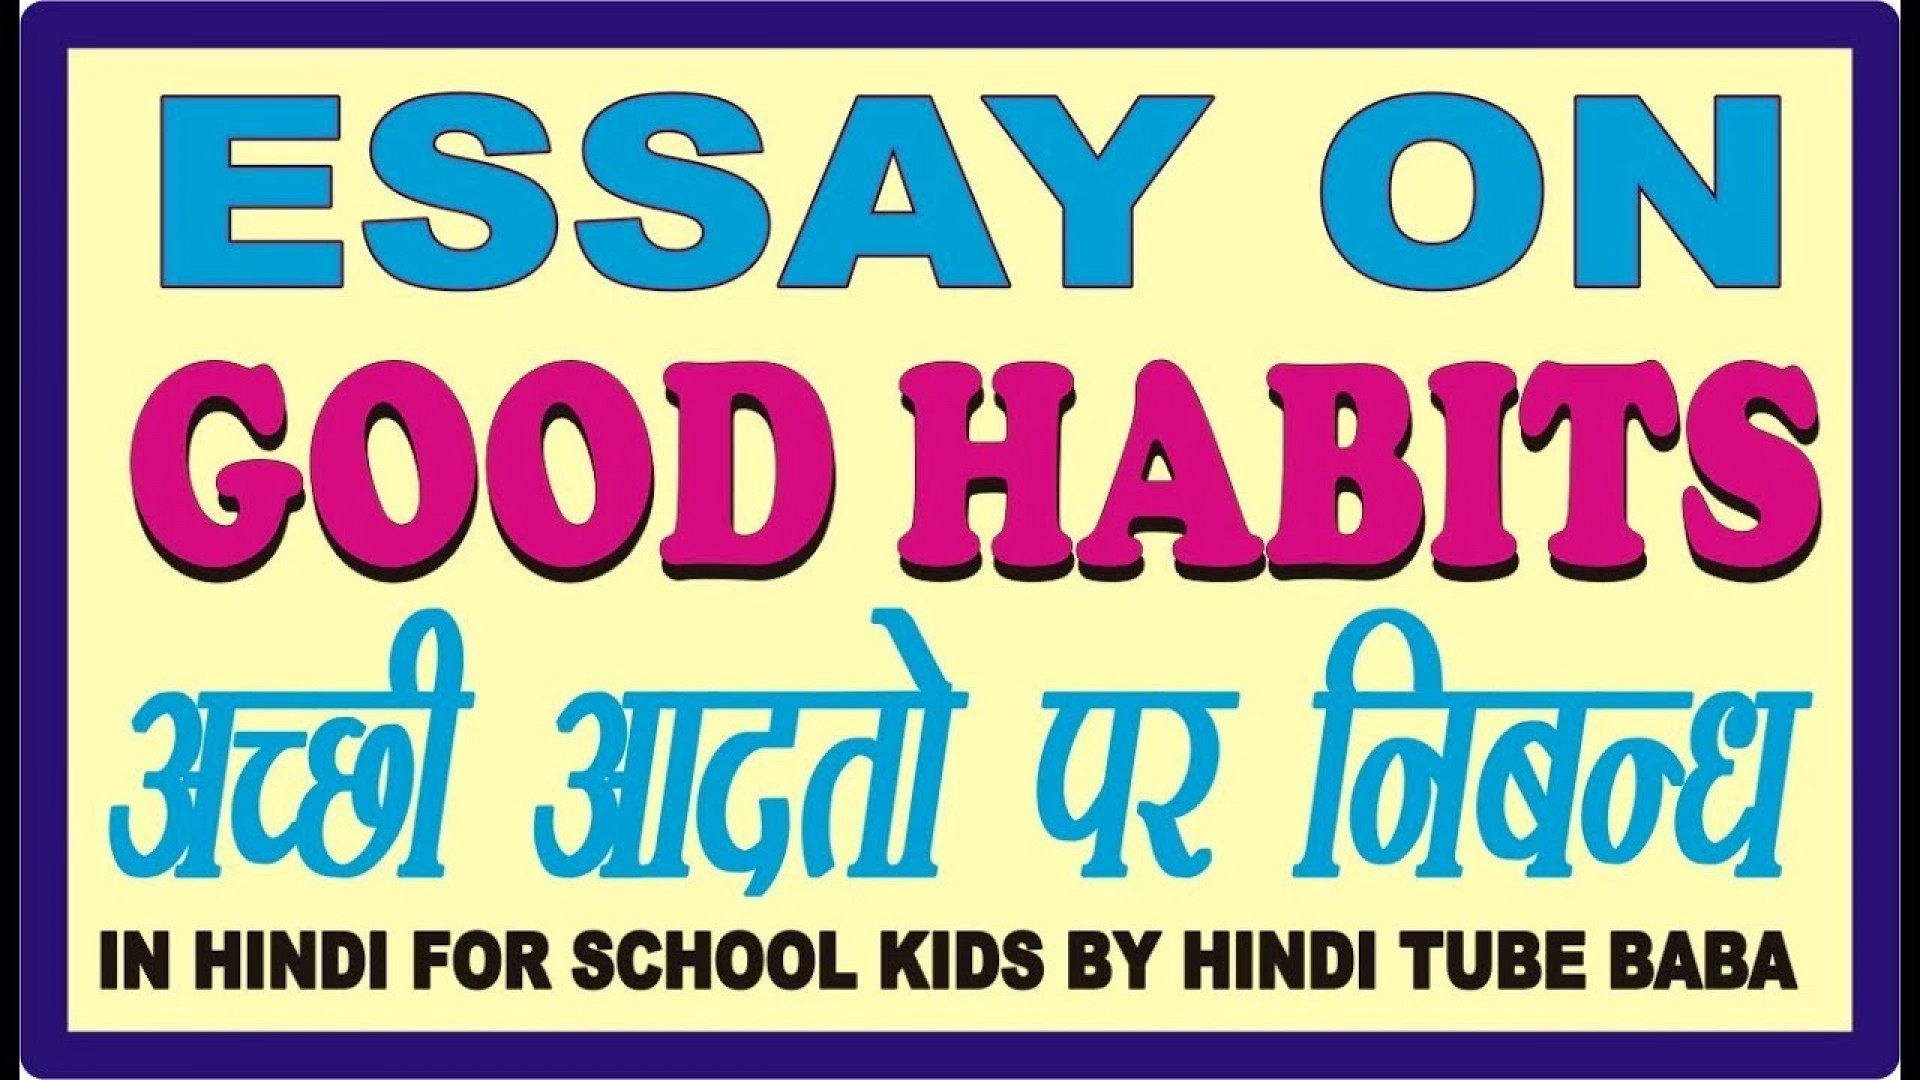 006 Good Habits Essay In Hindi Maxresdefault Exceptional Reading Habit Wikipedia 1920